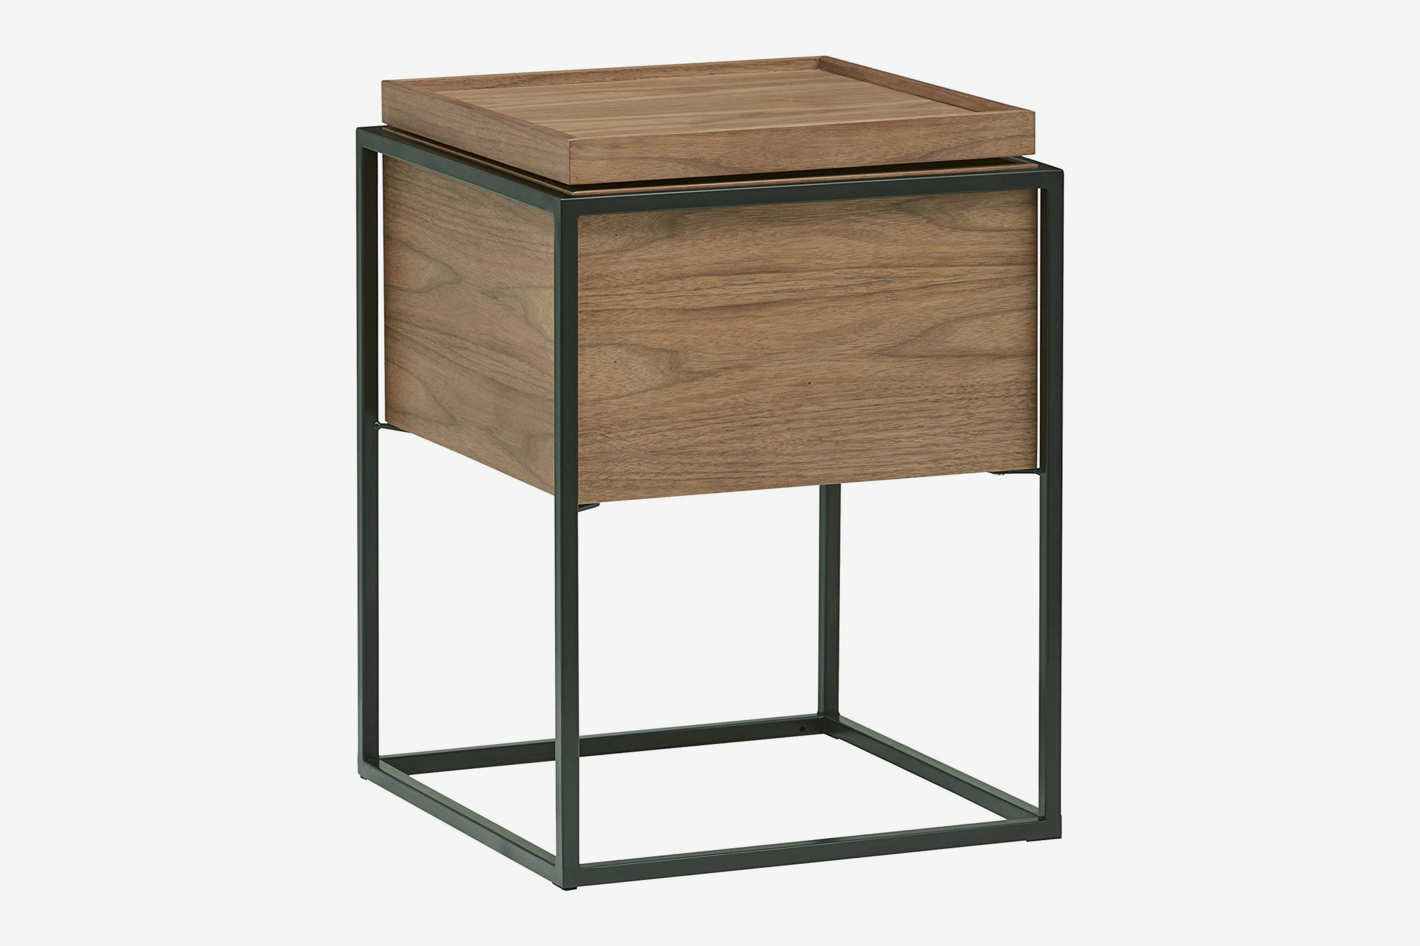 best end tables accent table rectangular rivet axel lid storage wood and metal side patio classy lamps small butler diy granite countertops coffee styling rattan grey round